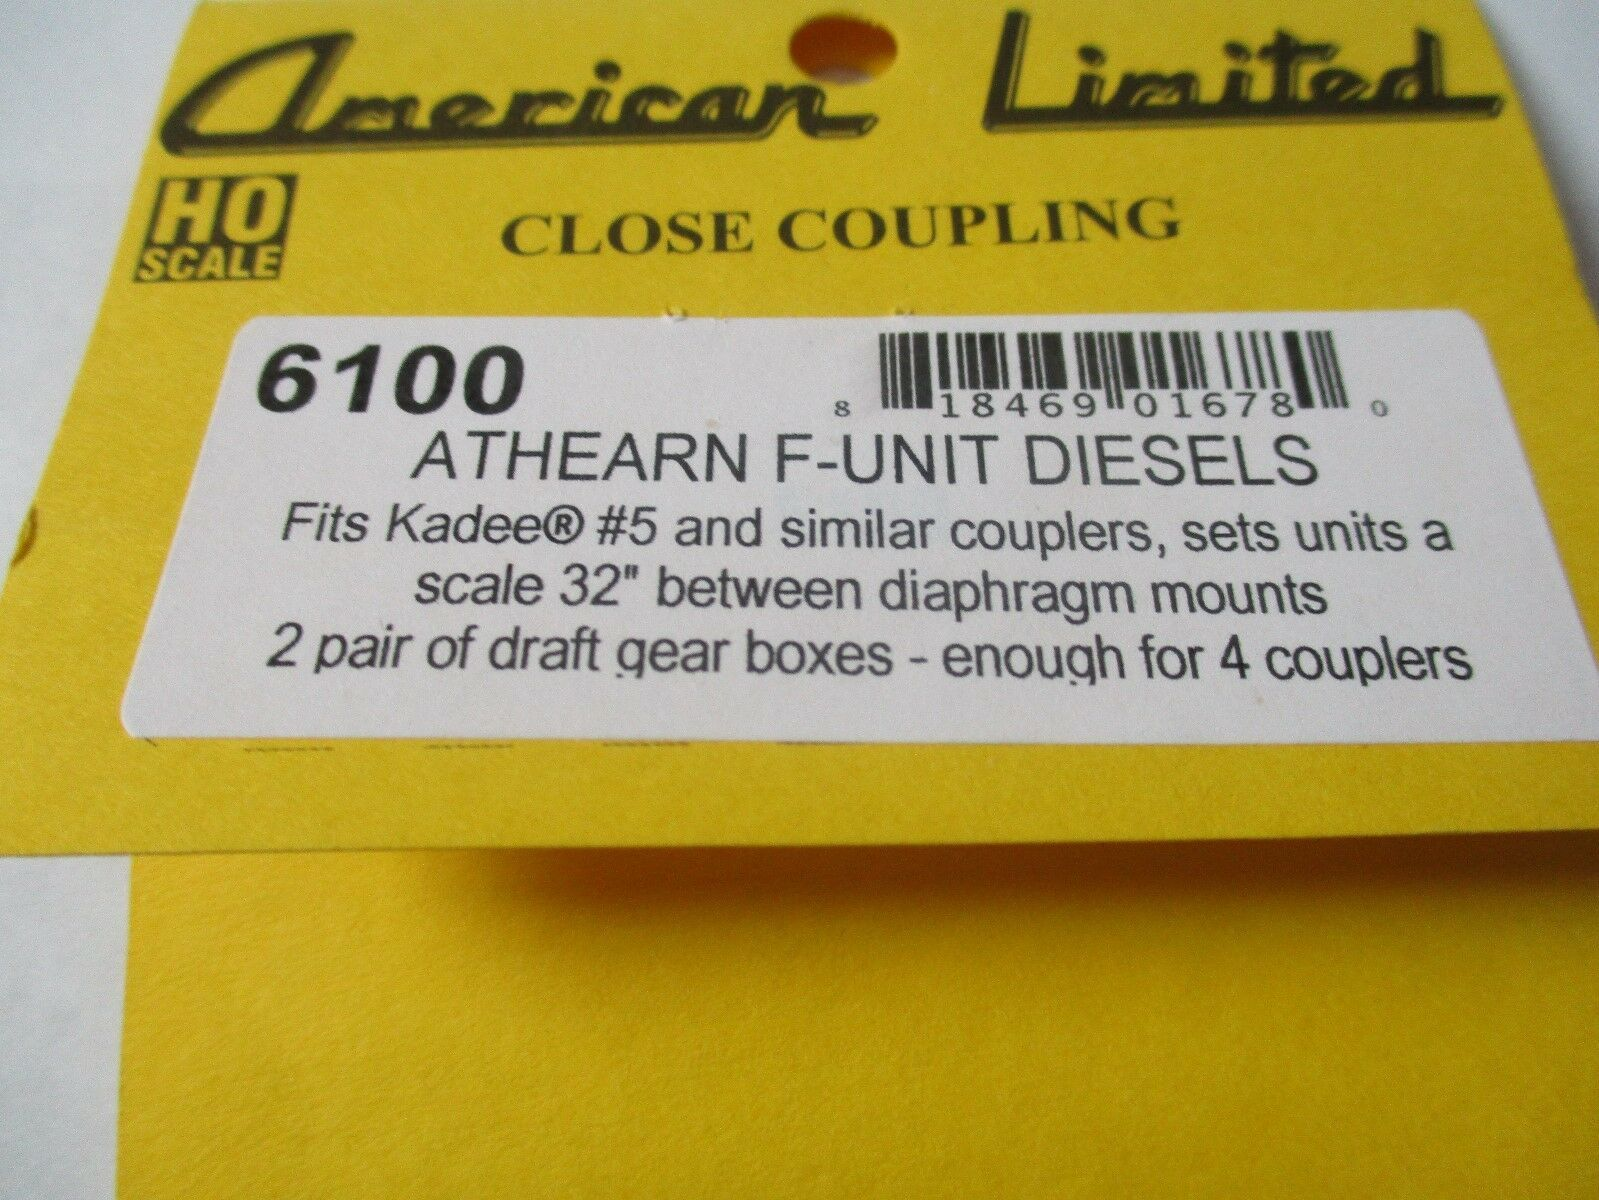 American Limited # 6100 Close Coupling Athearn F-Unit Diesels 2 Pair HO-Scale